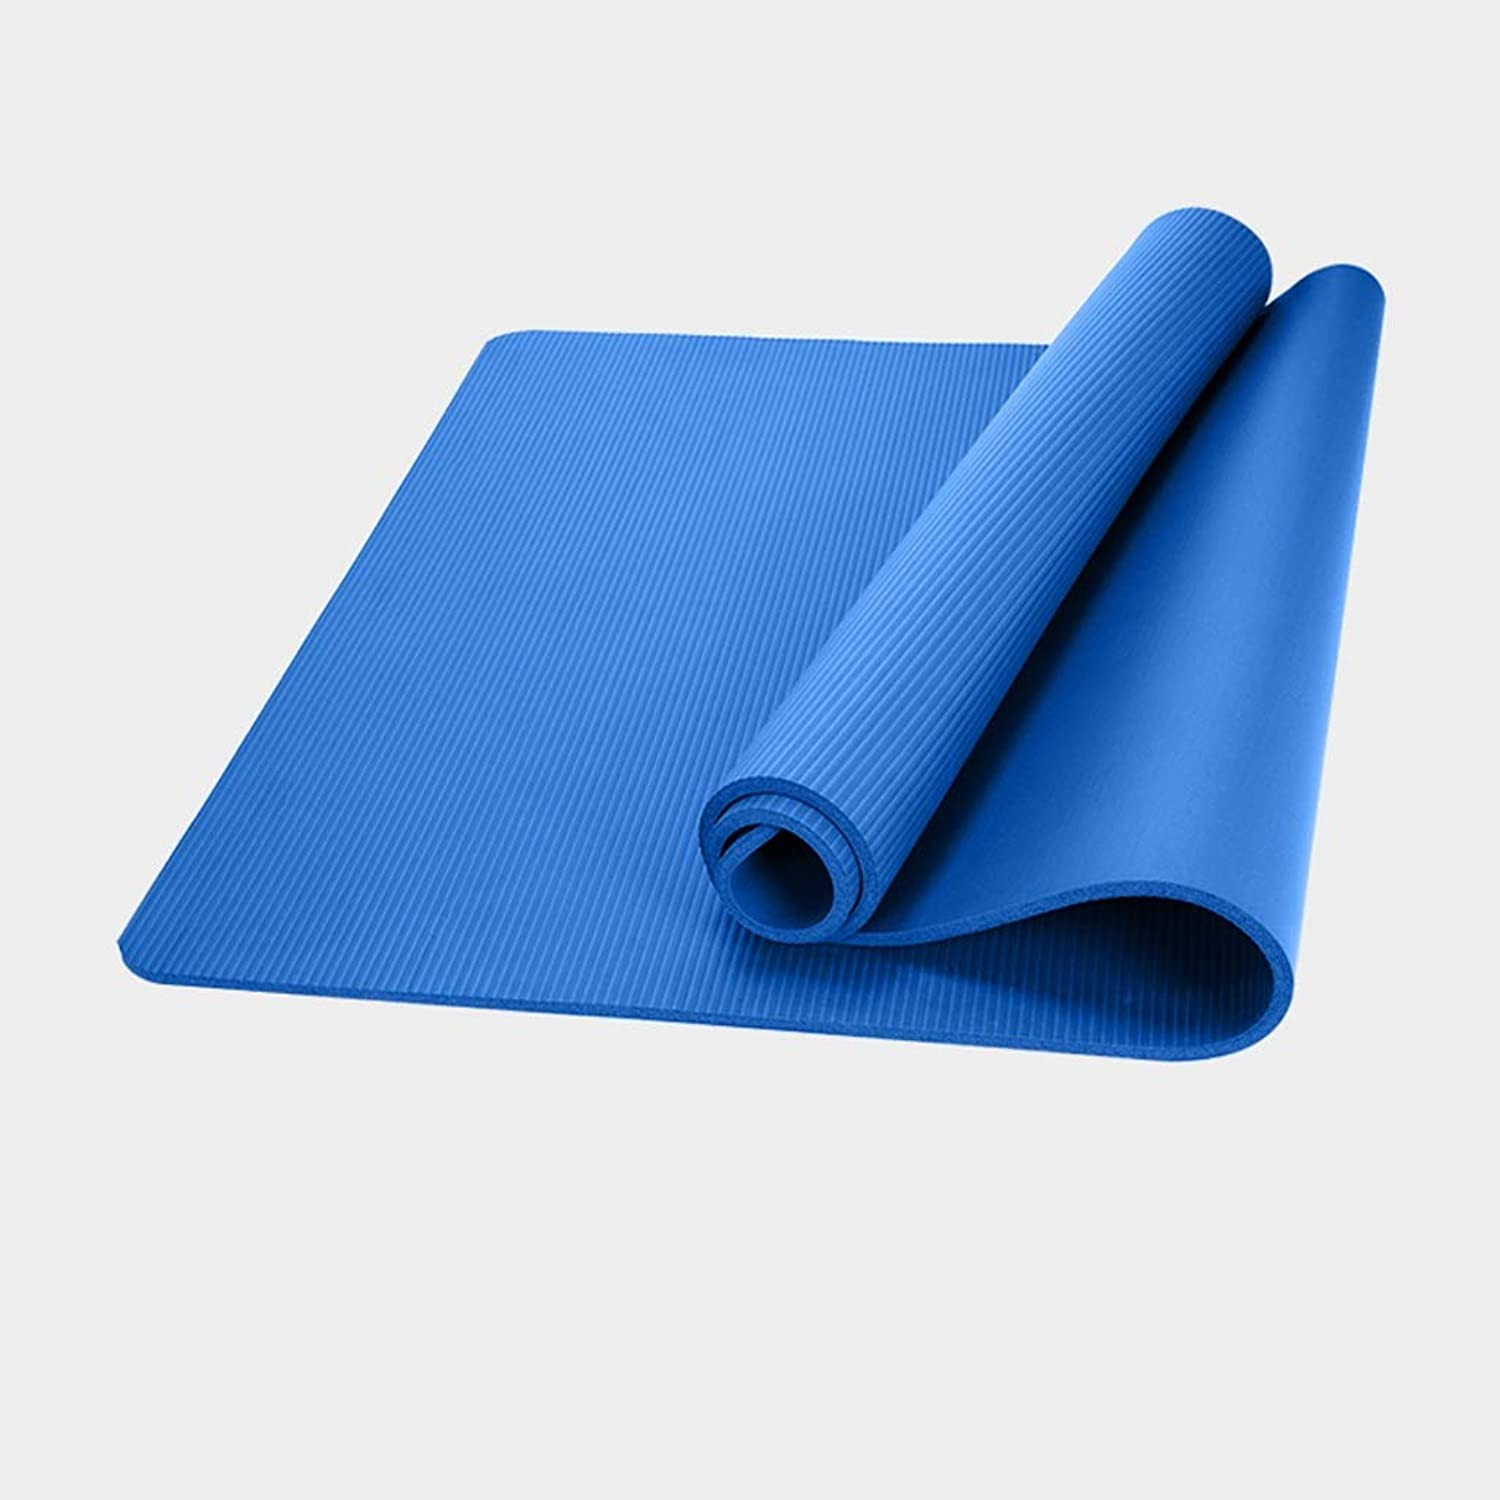 HBZY Yoga Mat Beginners Long Mat Men and Women Widened Thick NonSlip Yoga Fitness Dance Yoga Mat ThreePiece Yoga mat (color   blueee, Size   15mm)